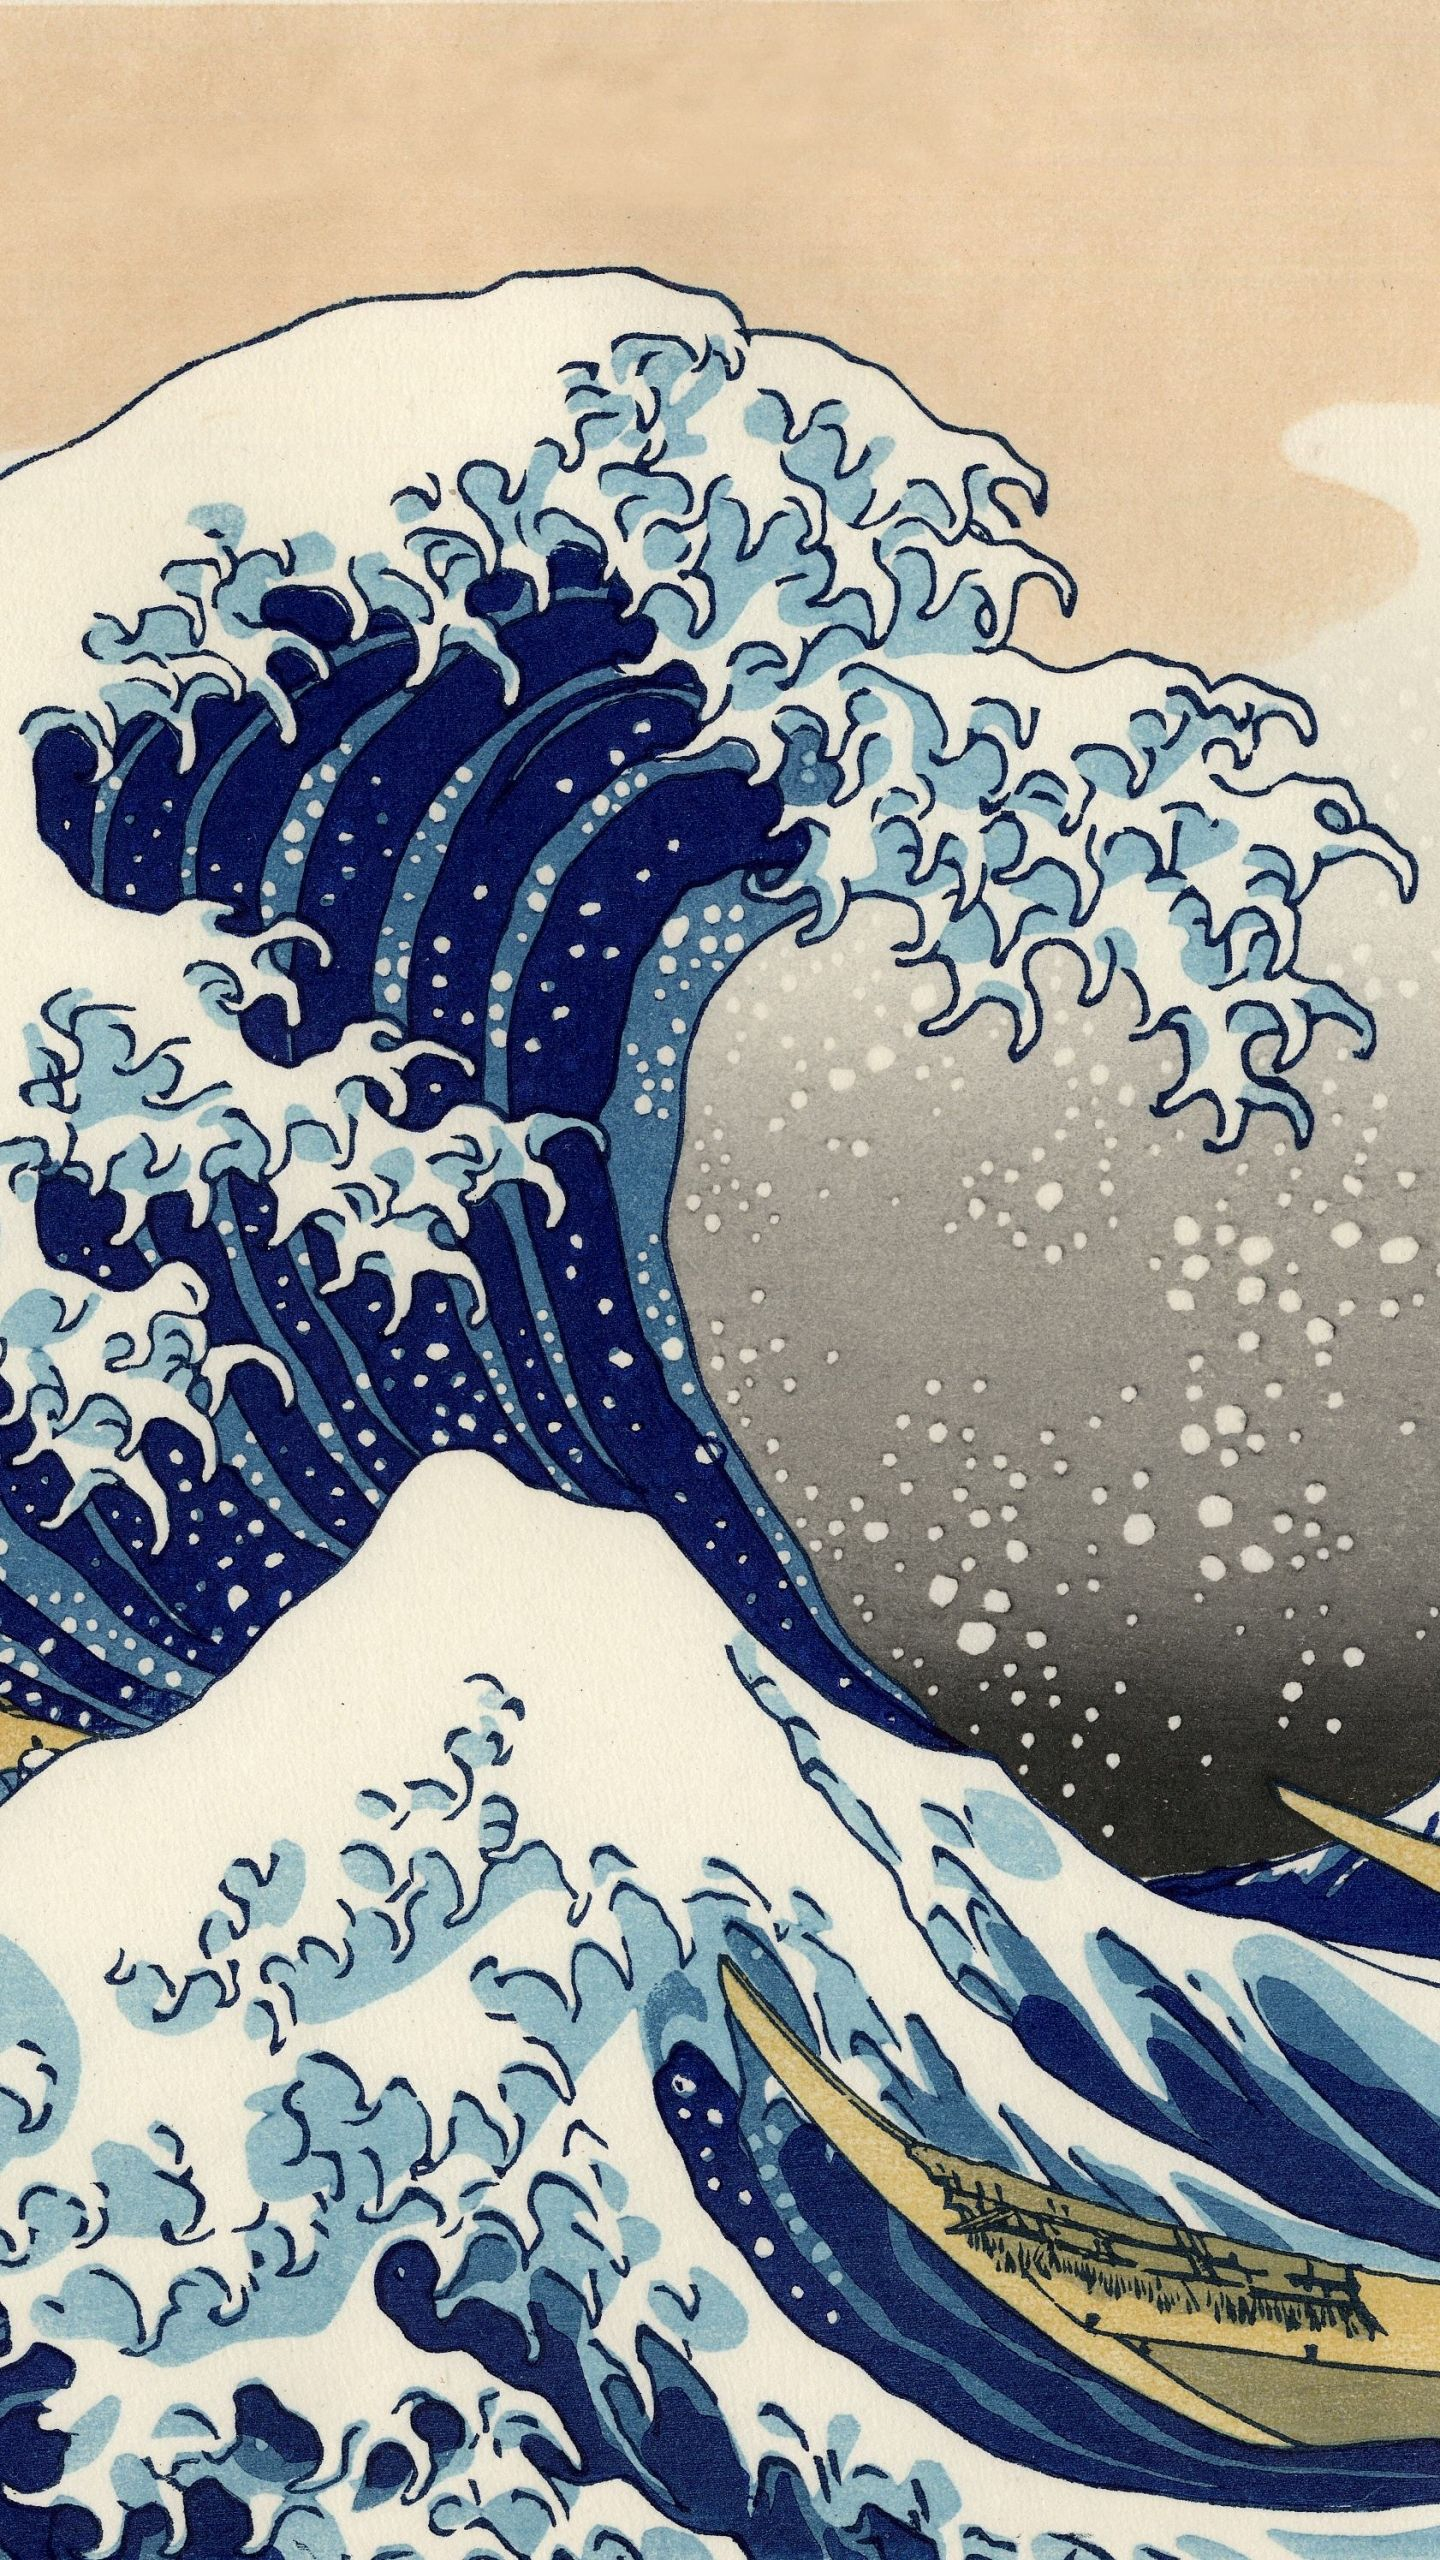 Download This Wallpaper 1080x1920 Artisticthe Great Wave Off